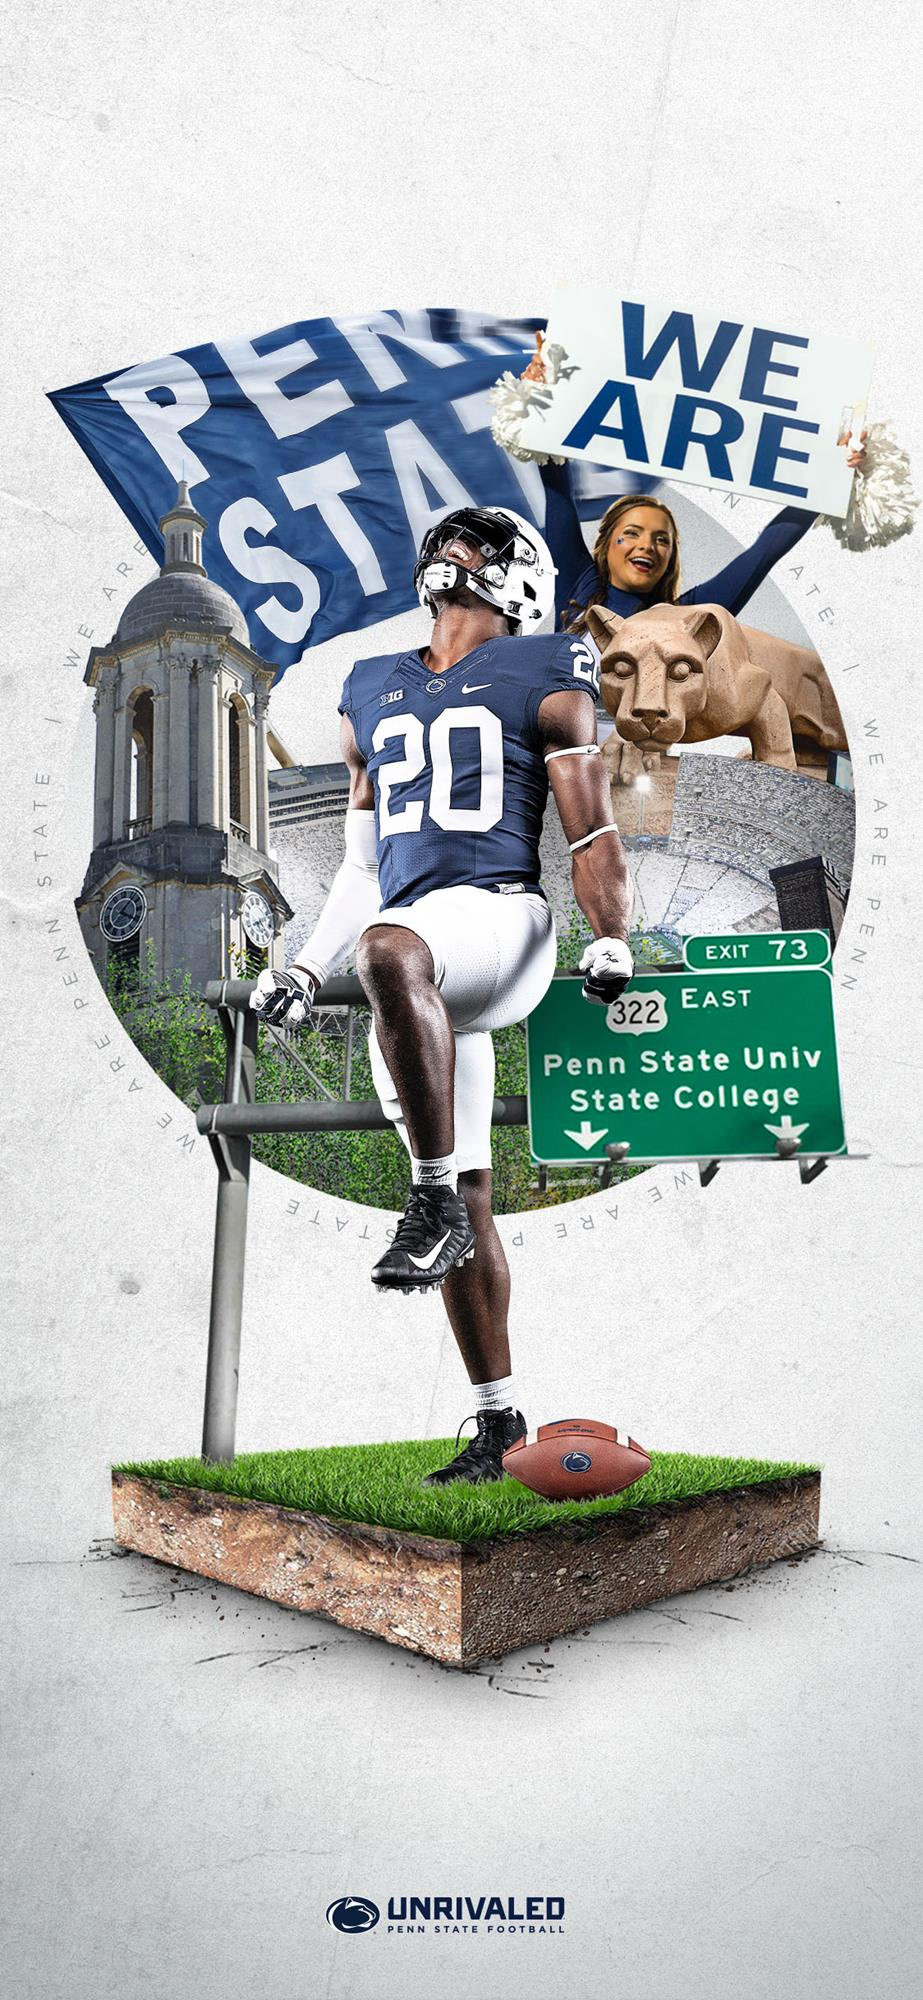 Wallpapers And Backgrounds Penn State University Athletics